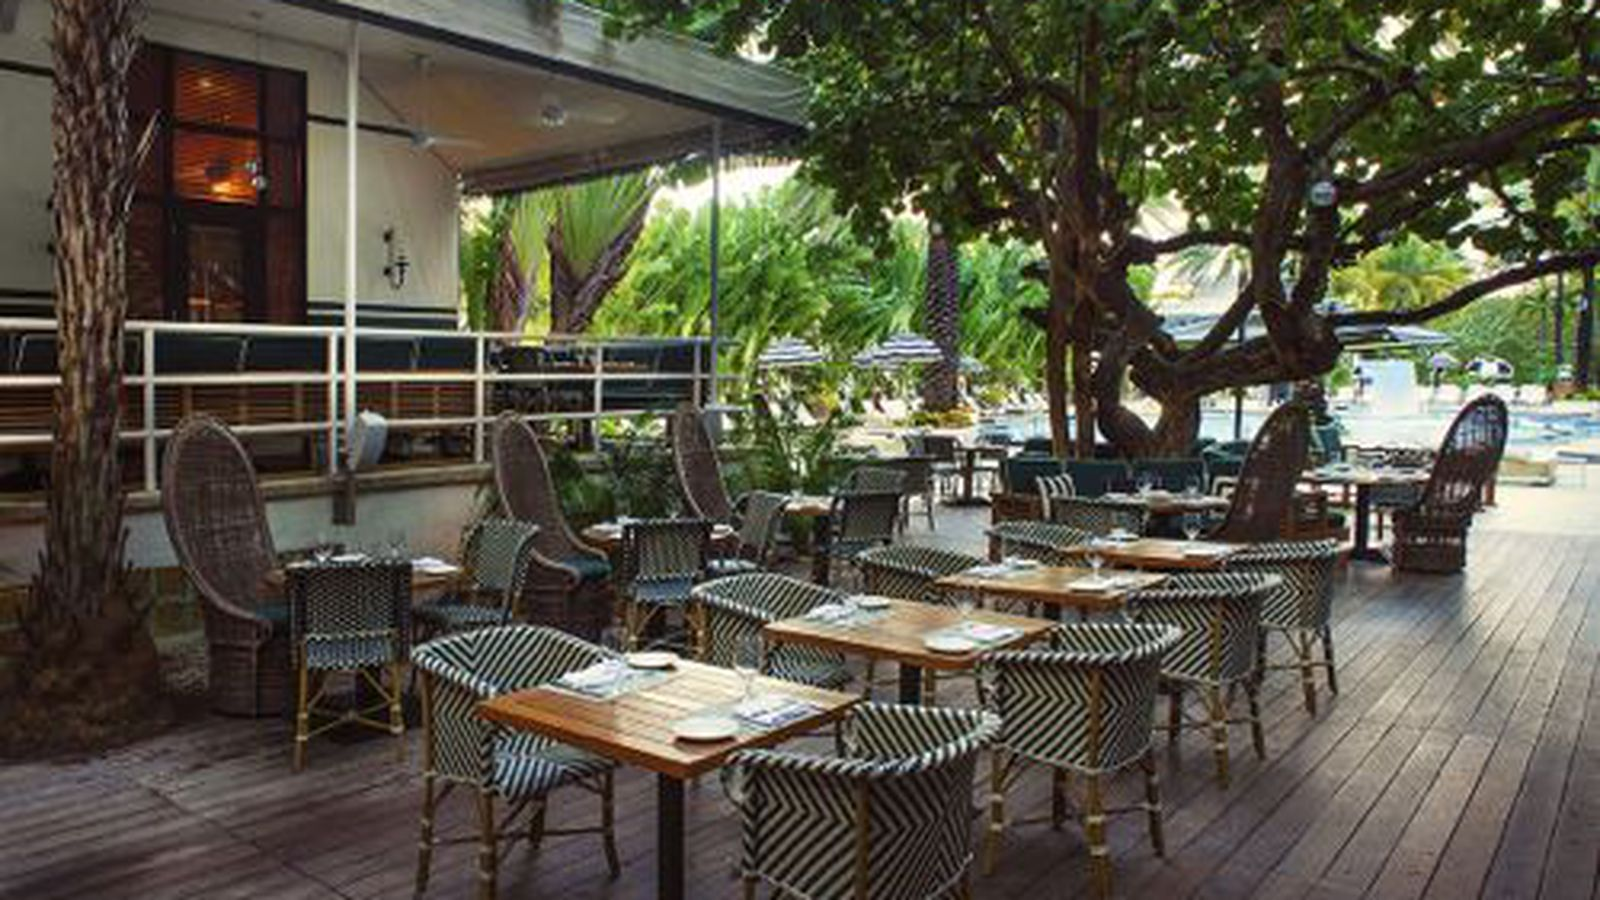 Best dating places in miami